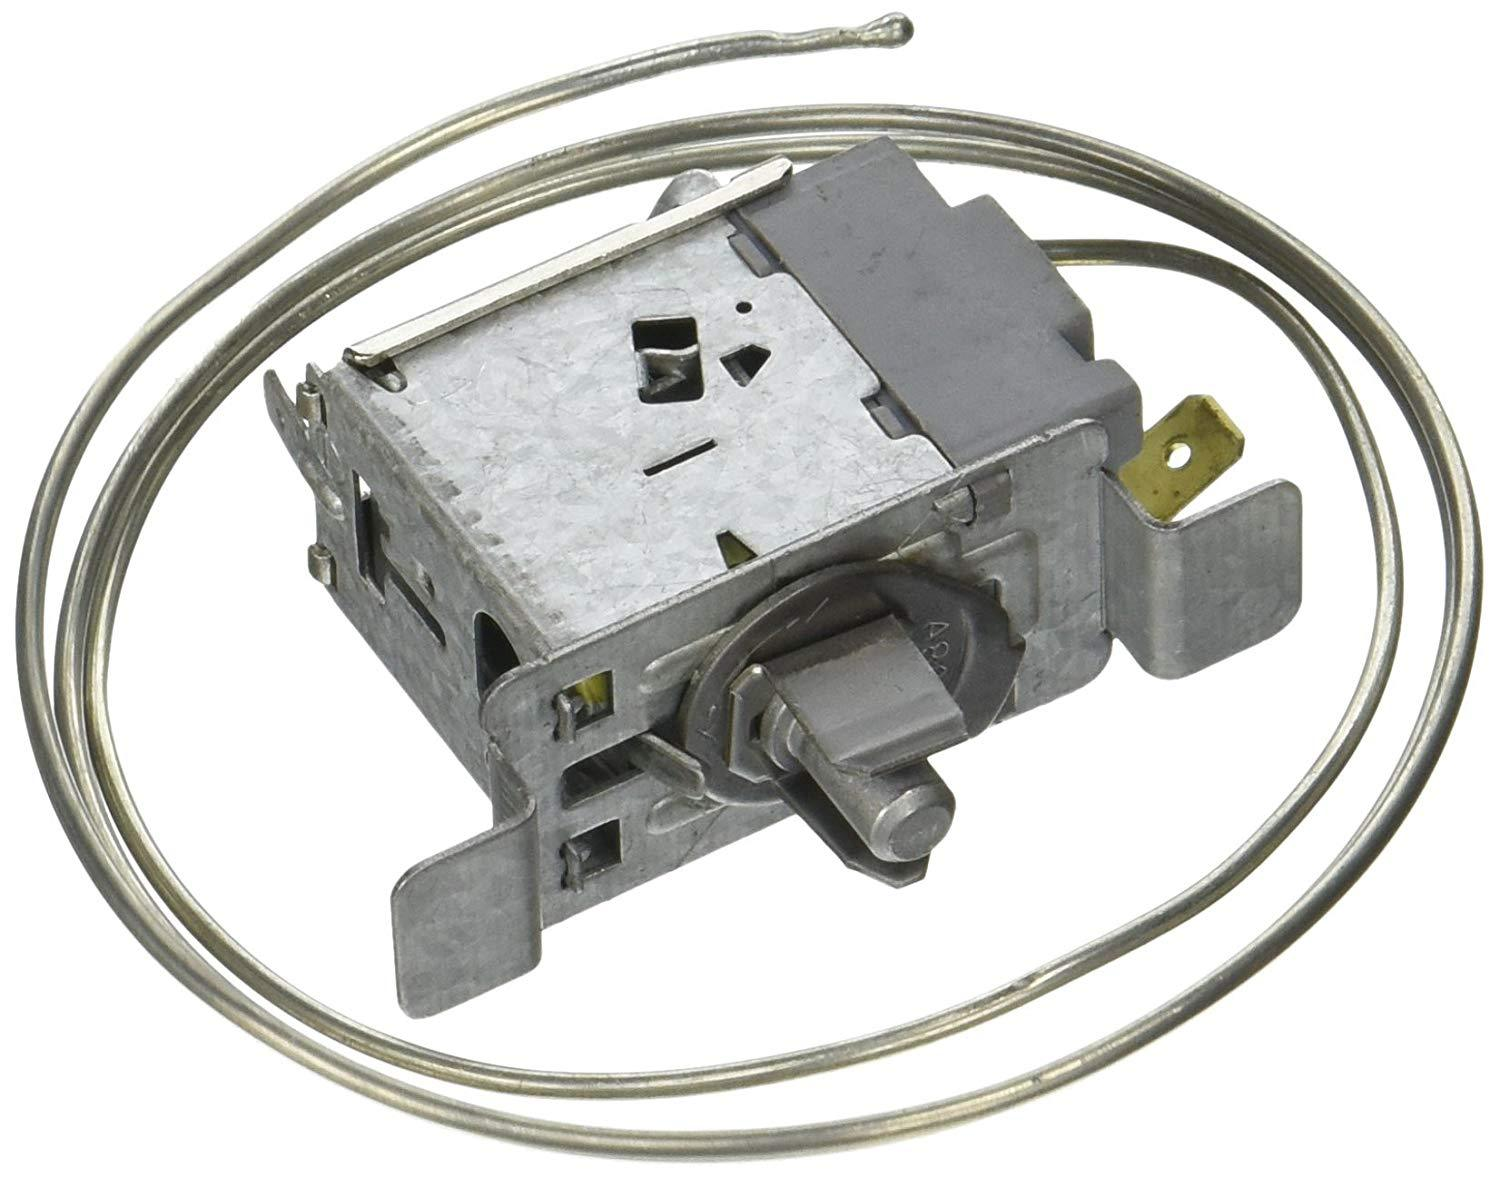 Kenmore / Sears 25363752304 Cold Control Thermostat Replacement